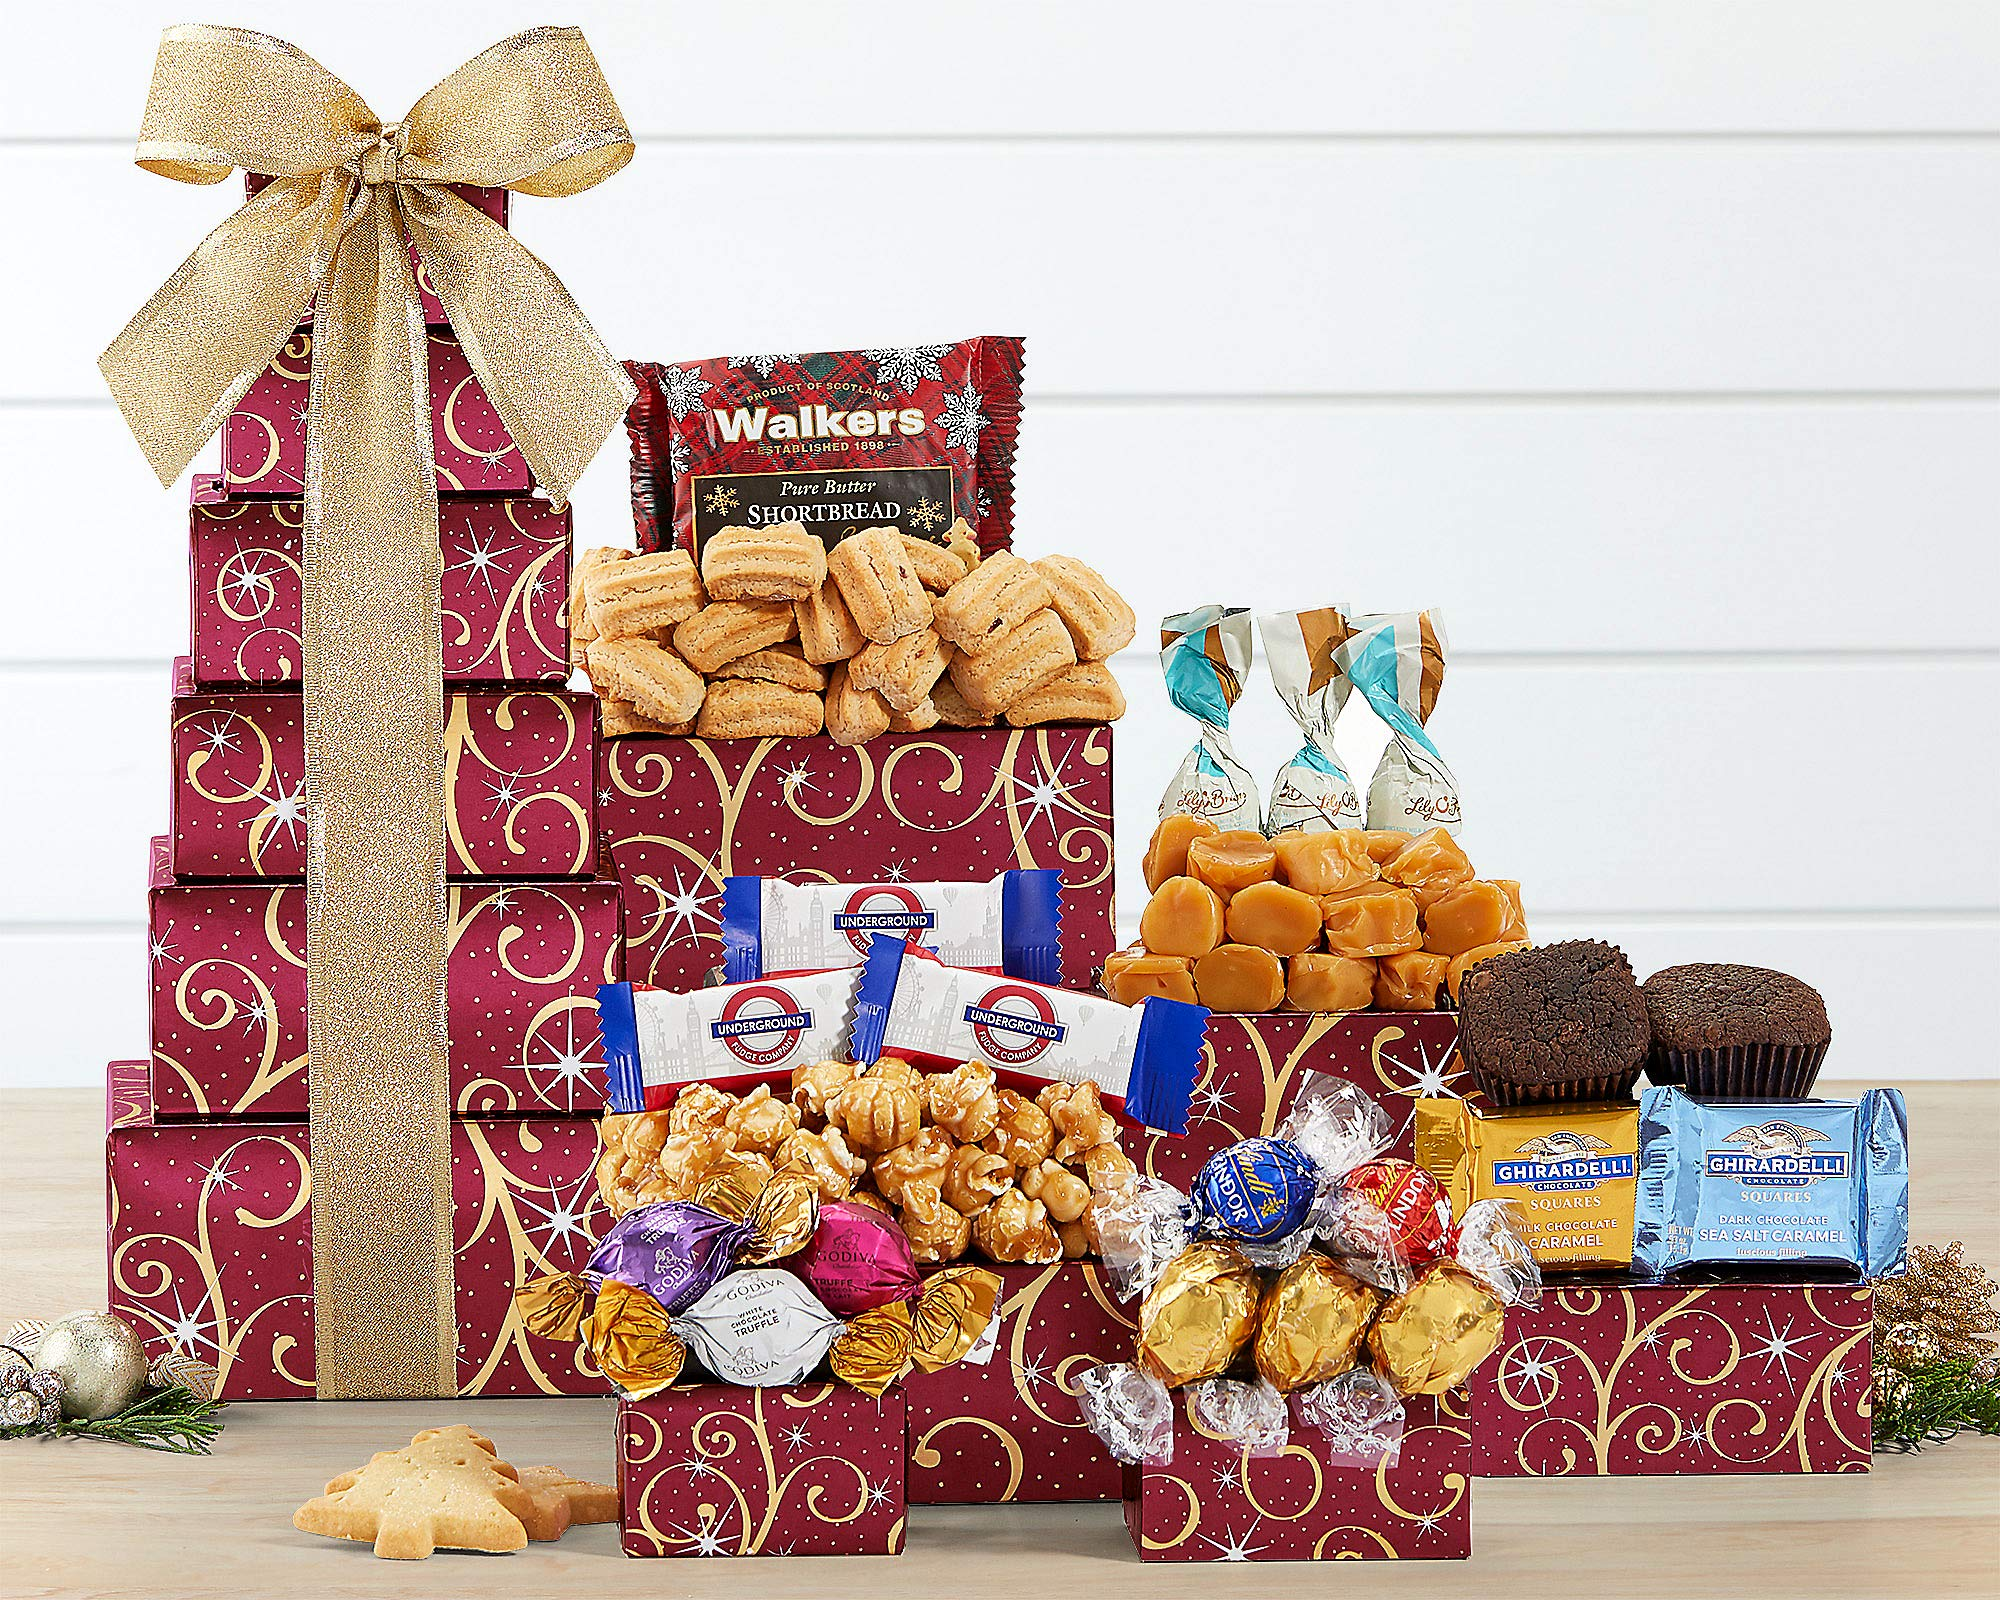 Gift Tower Of Sweets. Token of Appreciation Gift Tower. Perfect For Family Gift, Business Gift, Celebration Gift. A Birthday Gift Tower Favorite. Spectacular Thank You Gift Tower. by Wine Country Gift Baskets